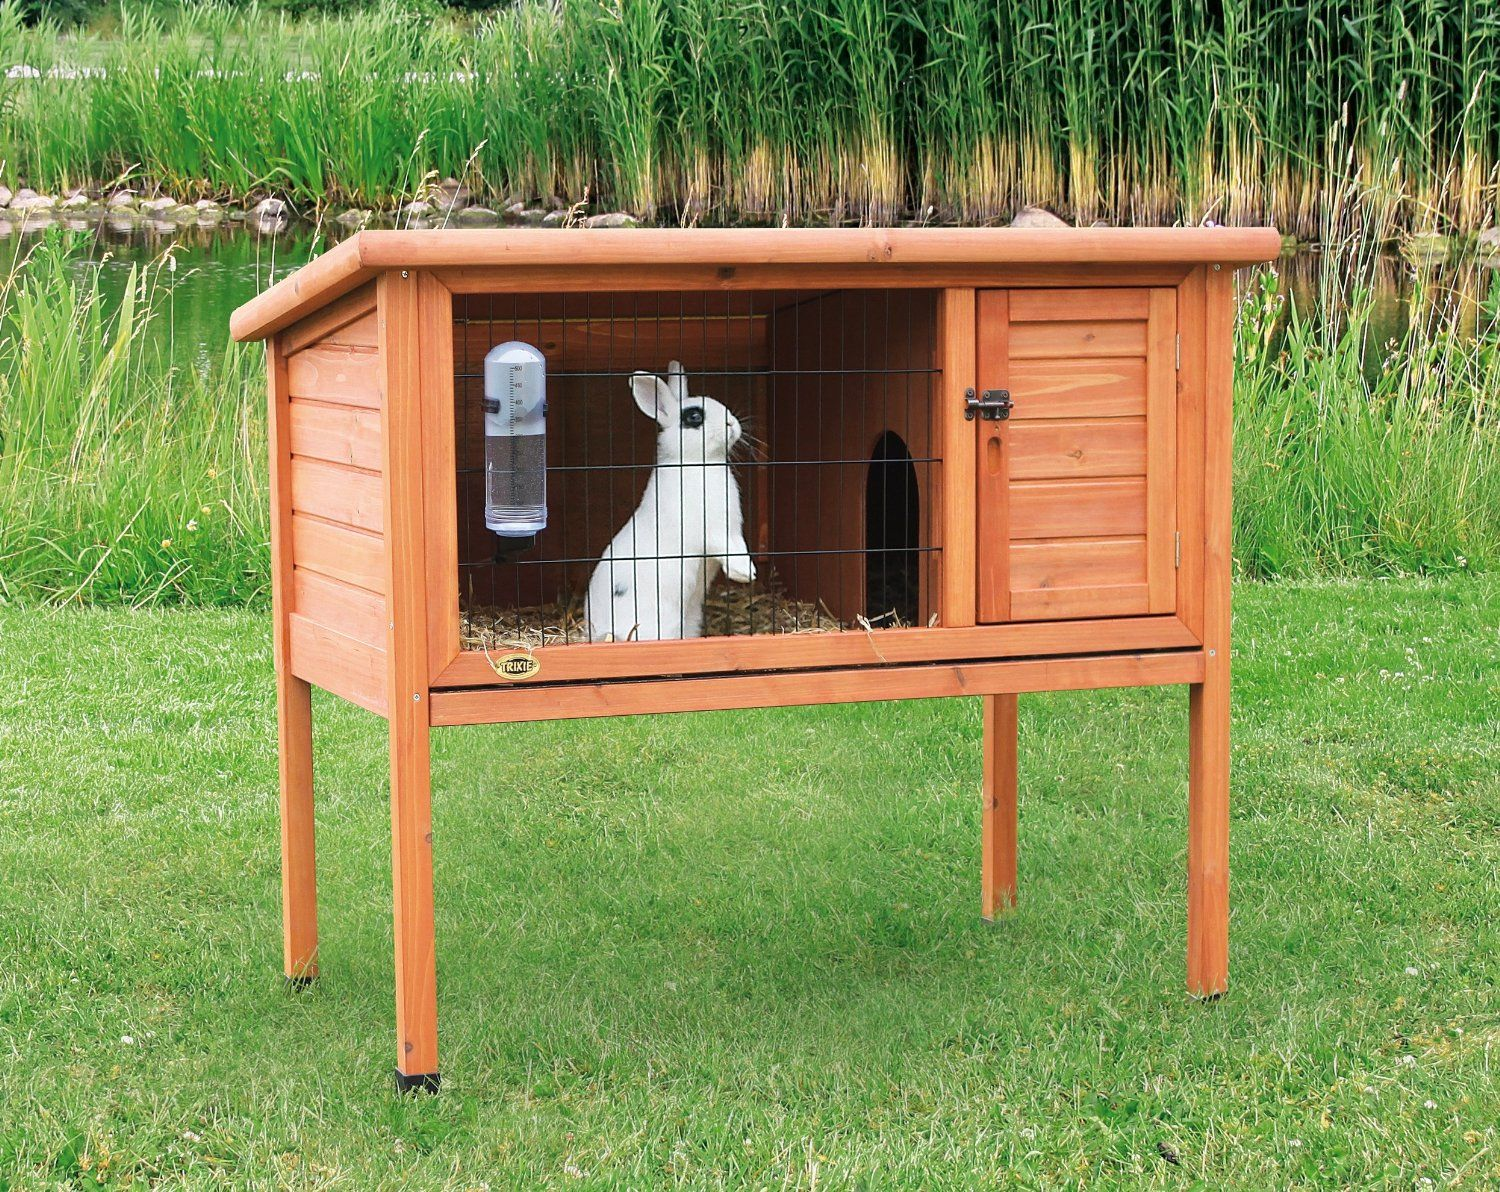 TRIXIE's One-Story Rabbit Hutch is ideal for small animals ...